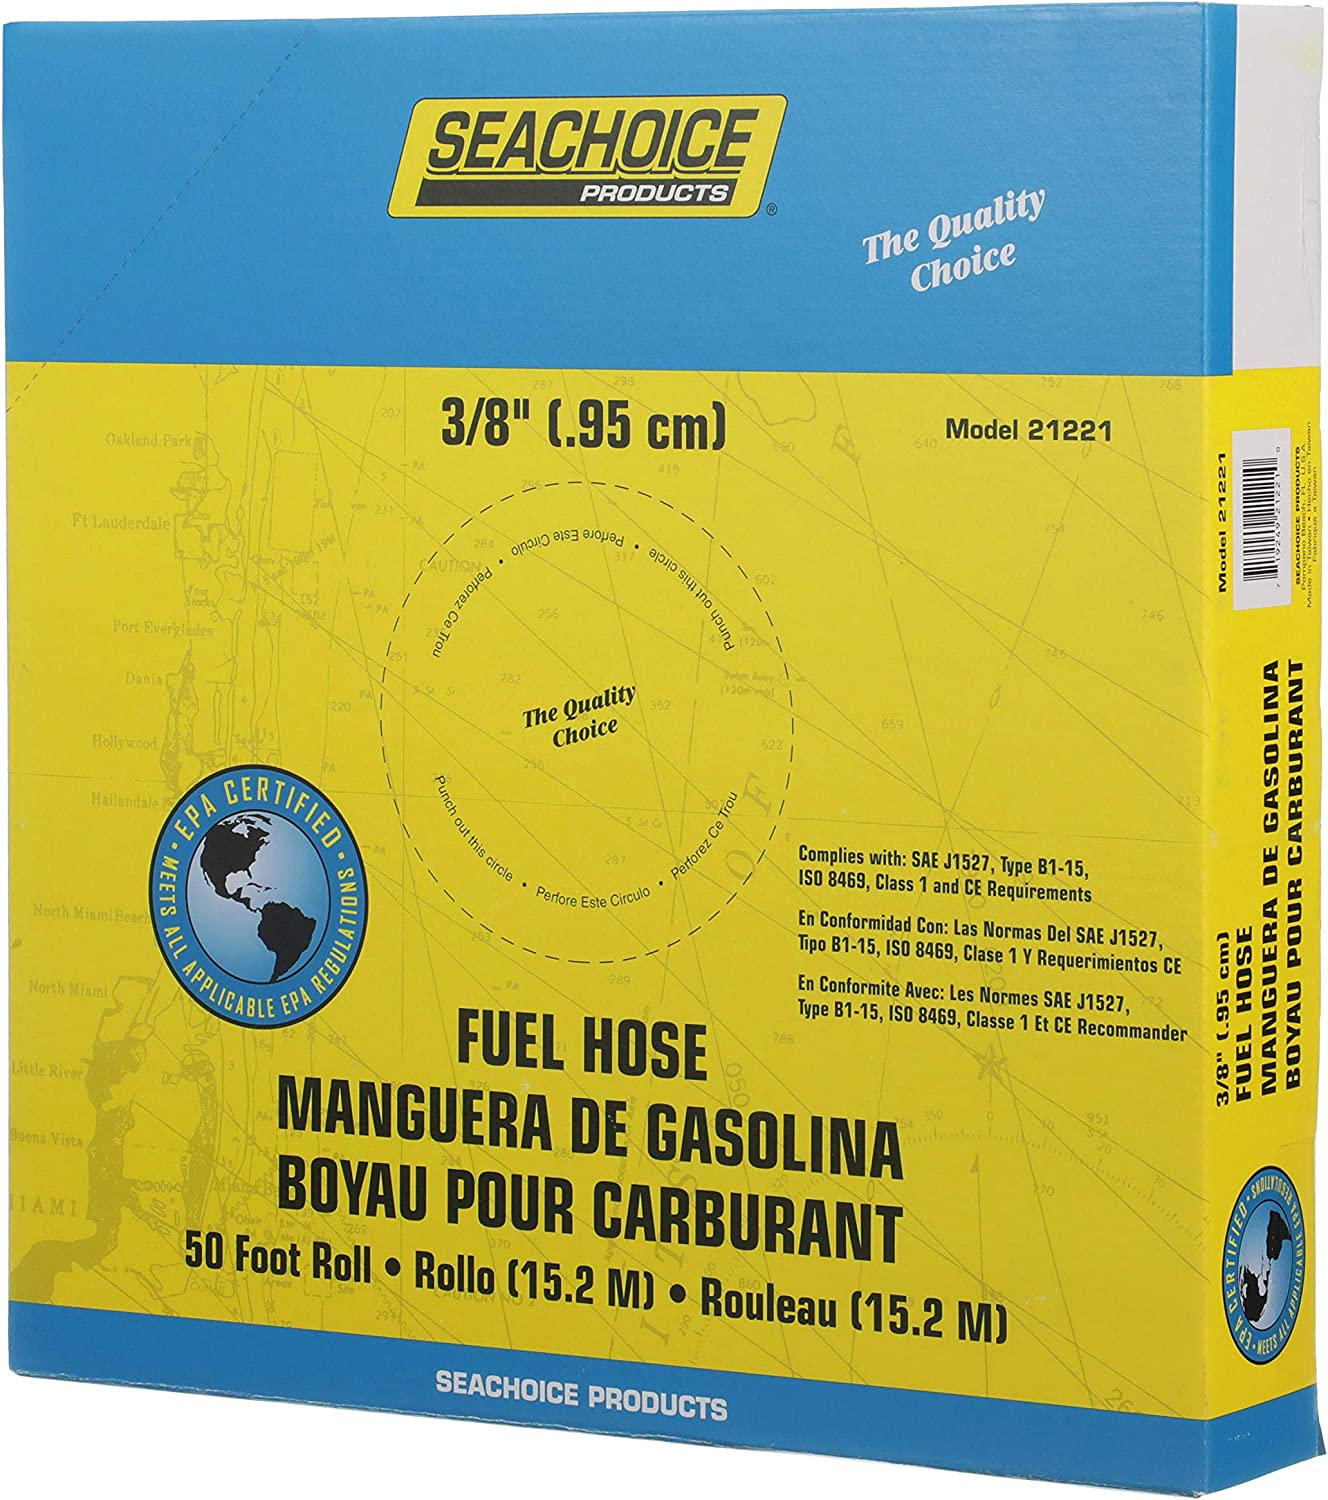 Seachoice 21221 Fuel Hose EPA Compliant Type B1-15 for Repair and Replacement on Outboard Engines